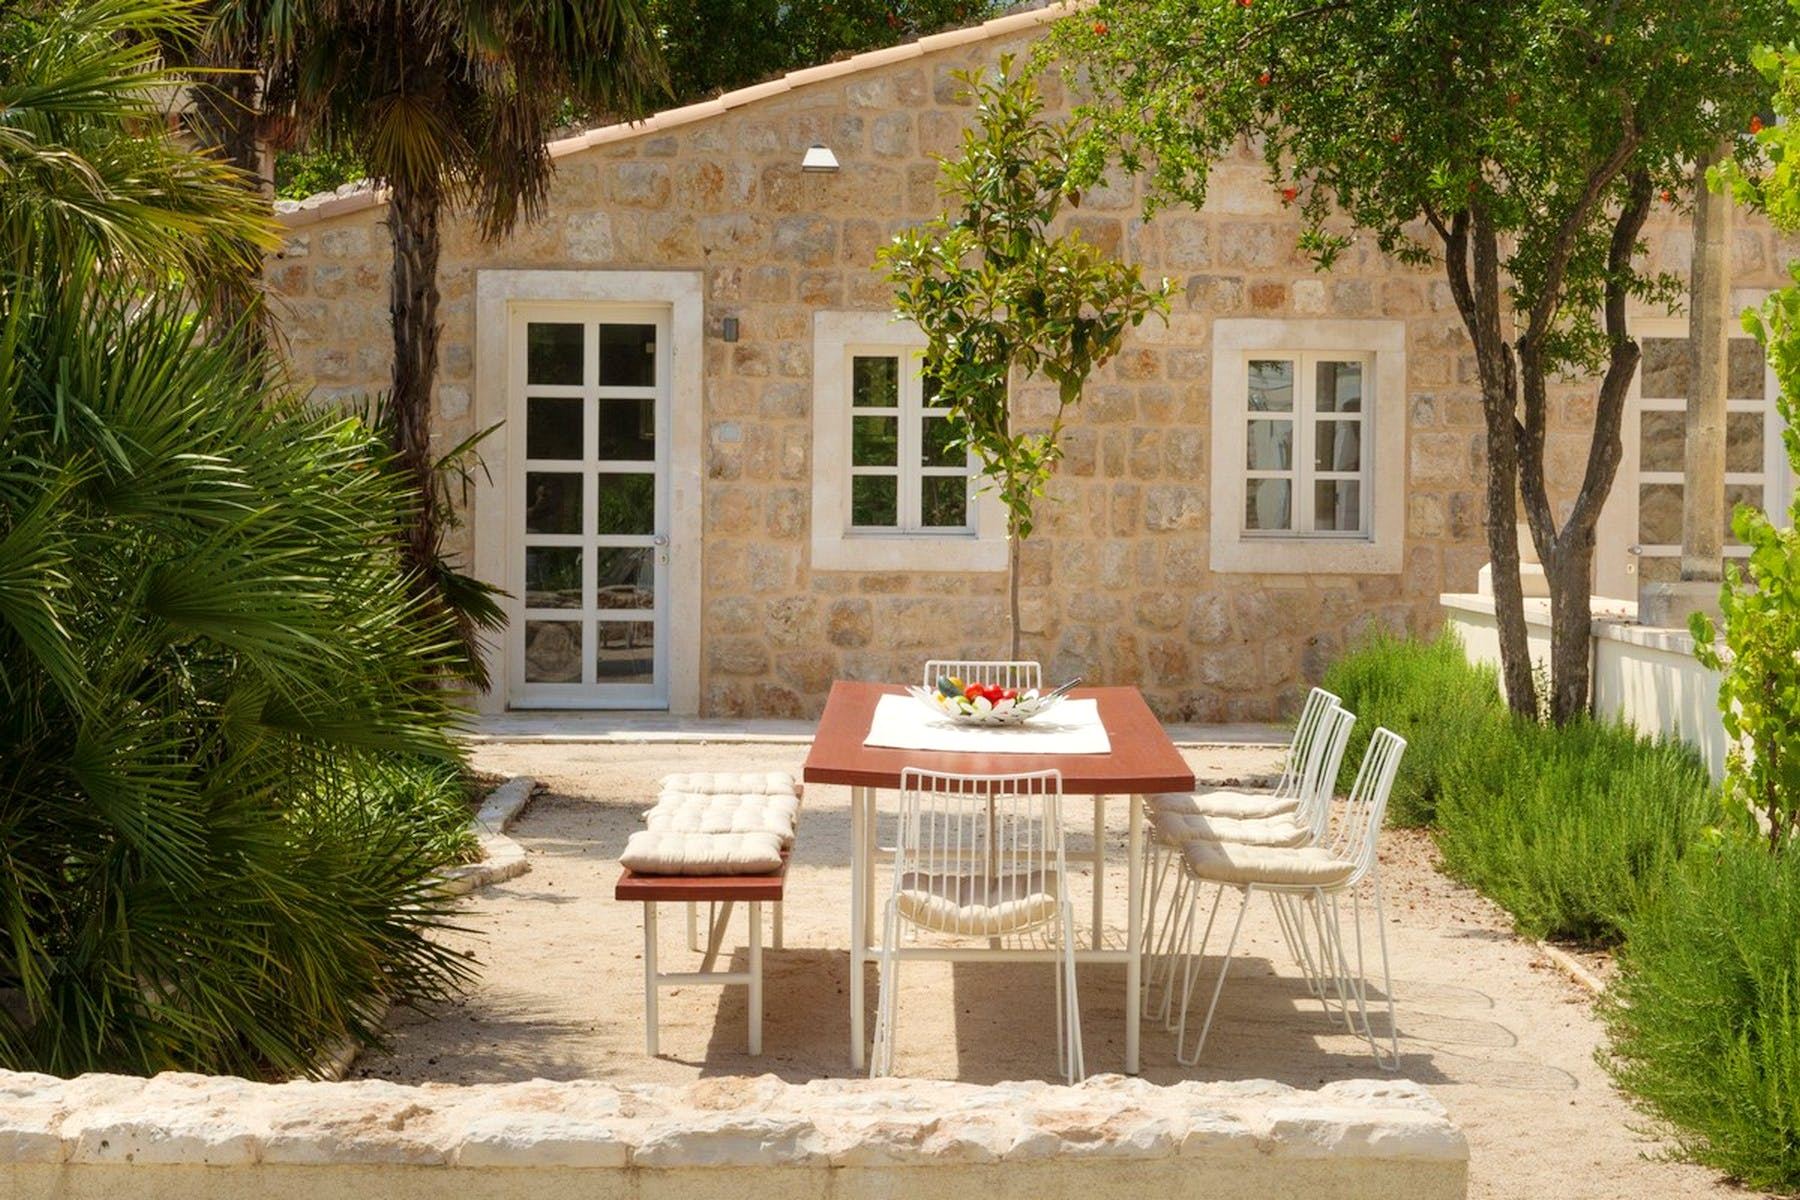 A place to soak up the Sun while enjoying a meal or drinks